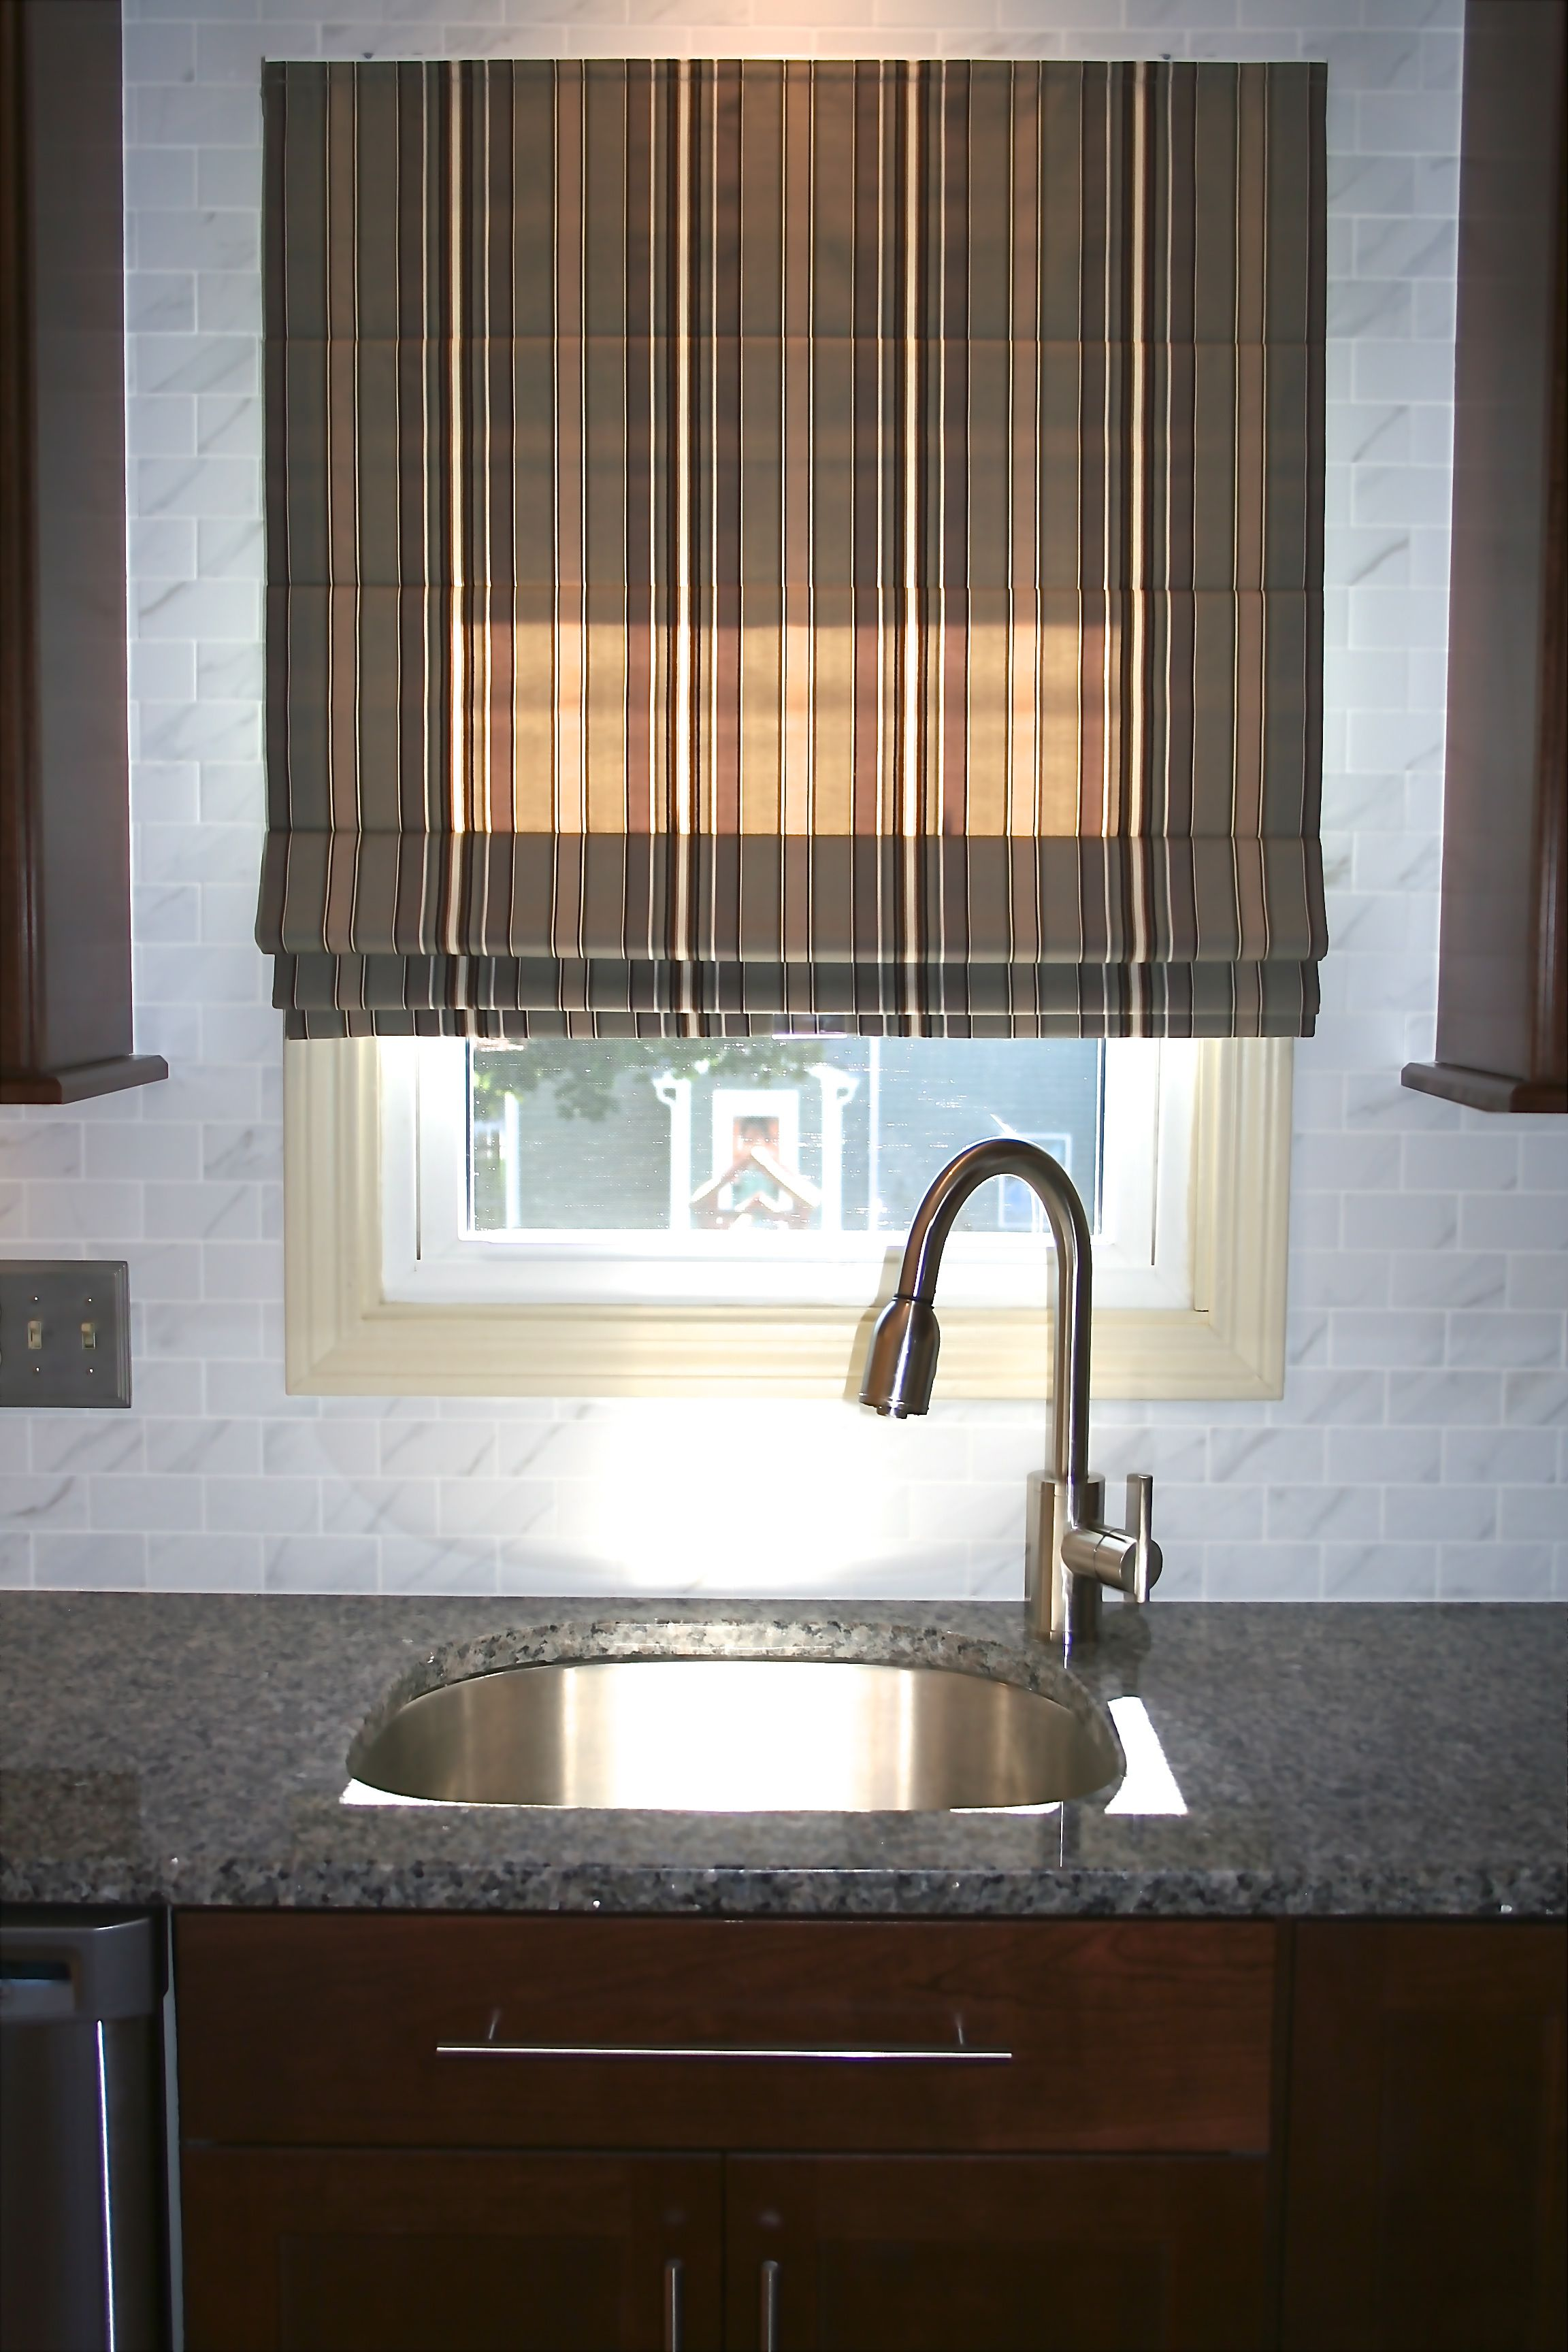 Waypoint Cabinetry in Cherry Spice, Danze Parma faucet, Daltile in ...